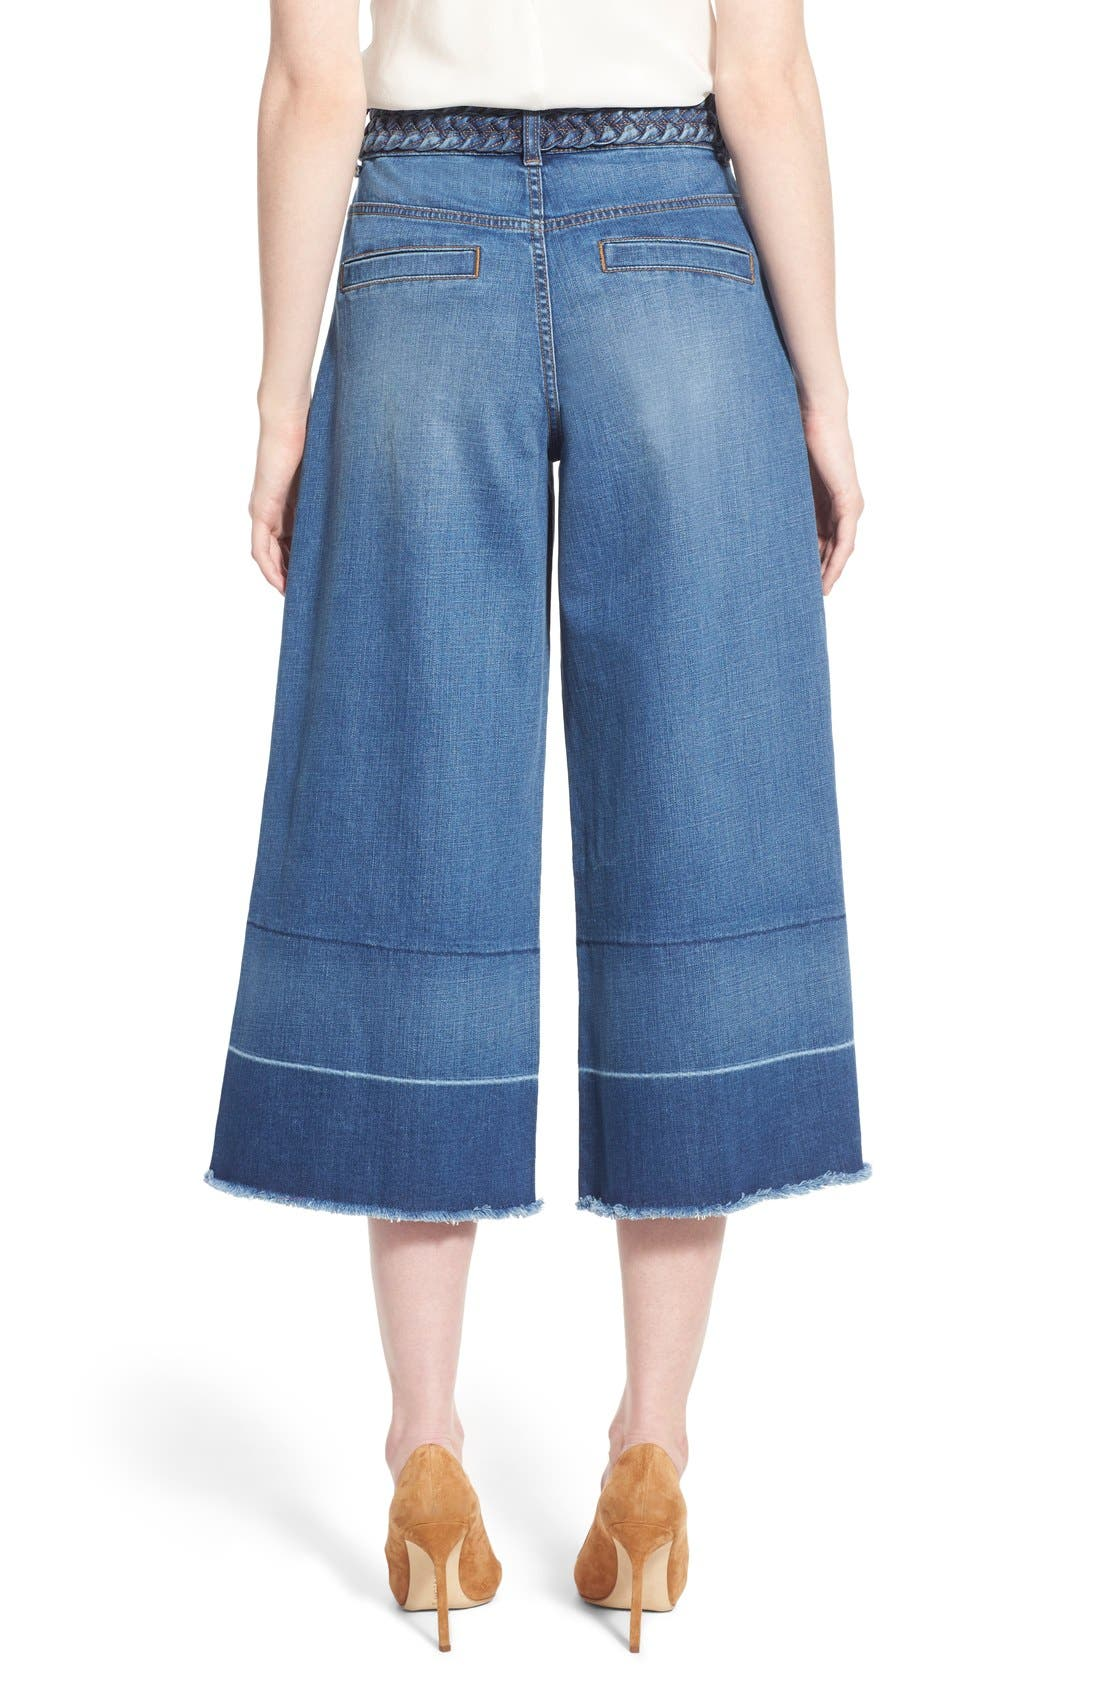 OLIVIA PALERMO + CHELSEA28, High Rise Denim Culottes, Alternate thumbnail 6, color, 410